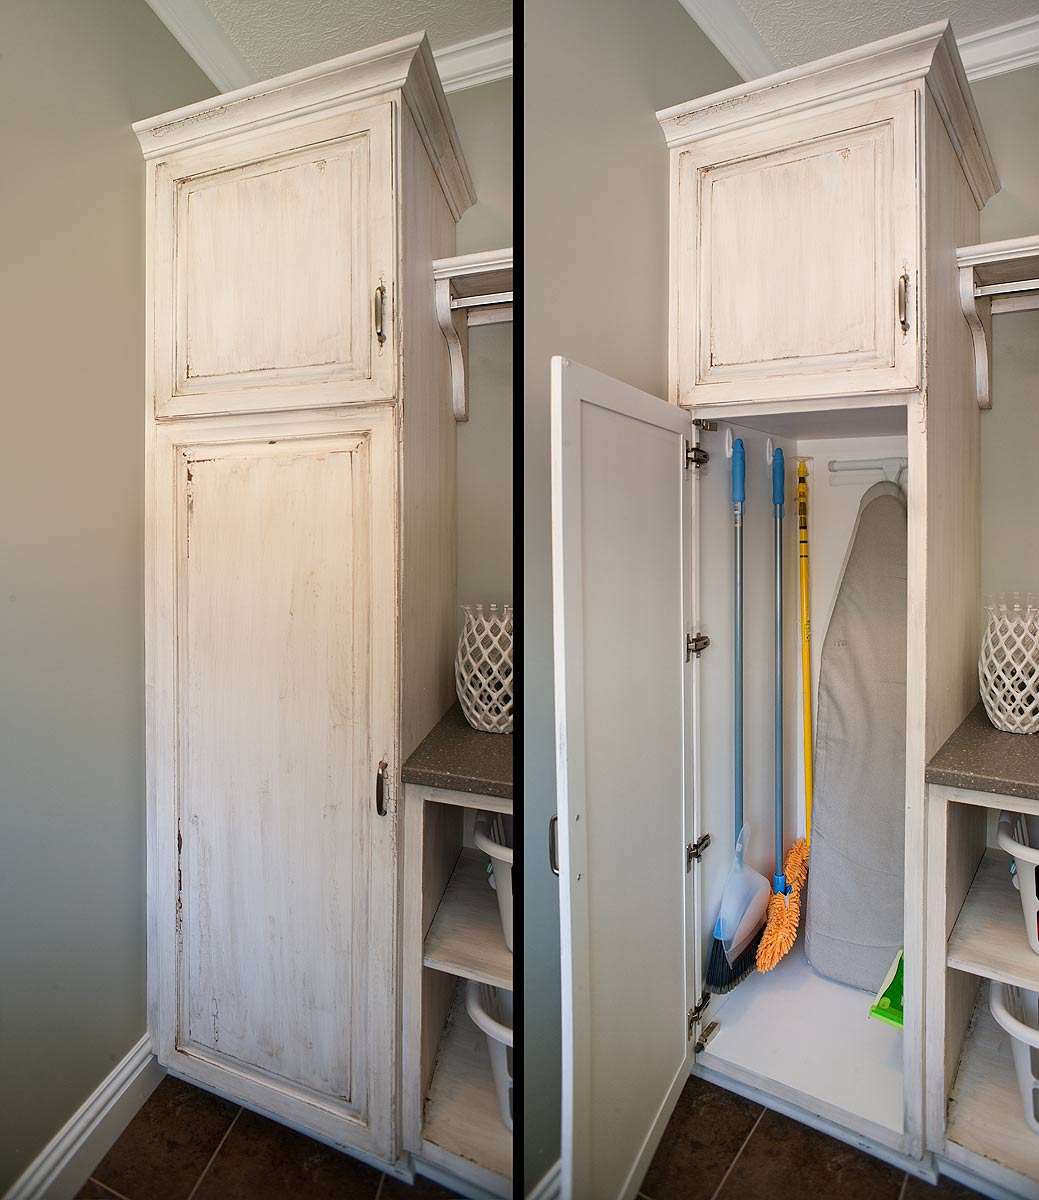 Broom Closet Cabinet: Smart and Practical Solution to Organize the ...